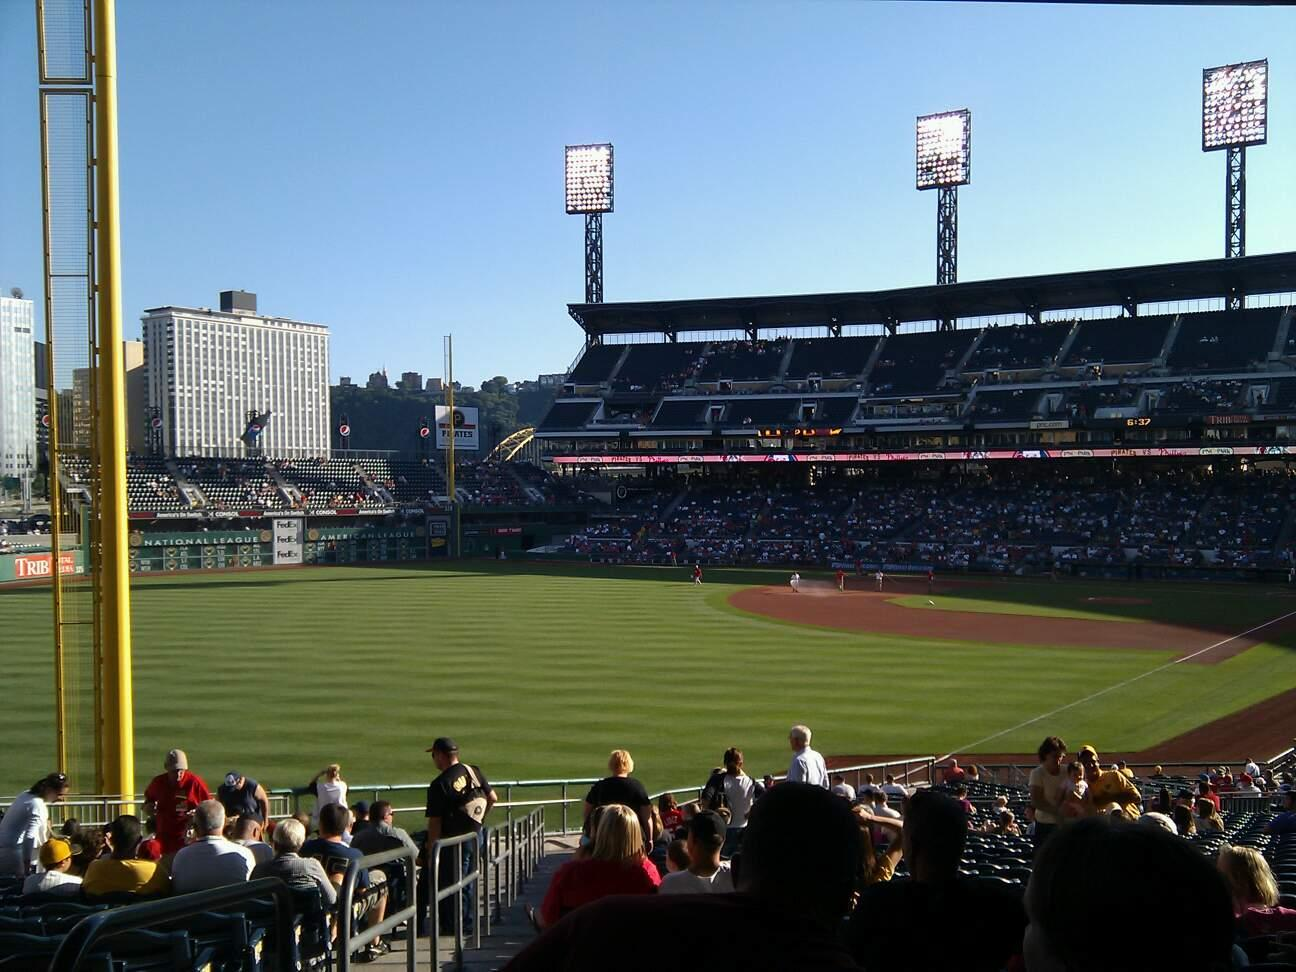 PNC Park Section 132 Row ff Seat 24